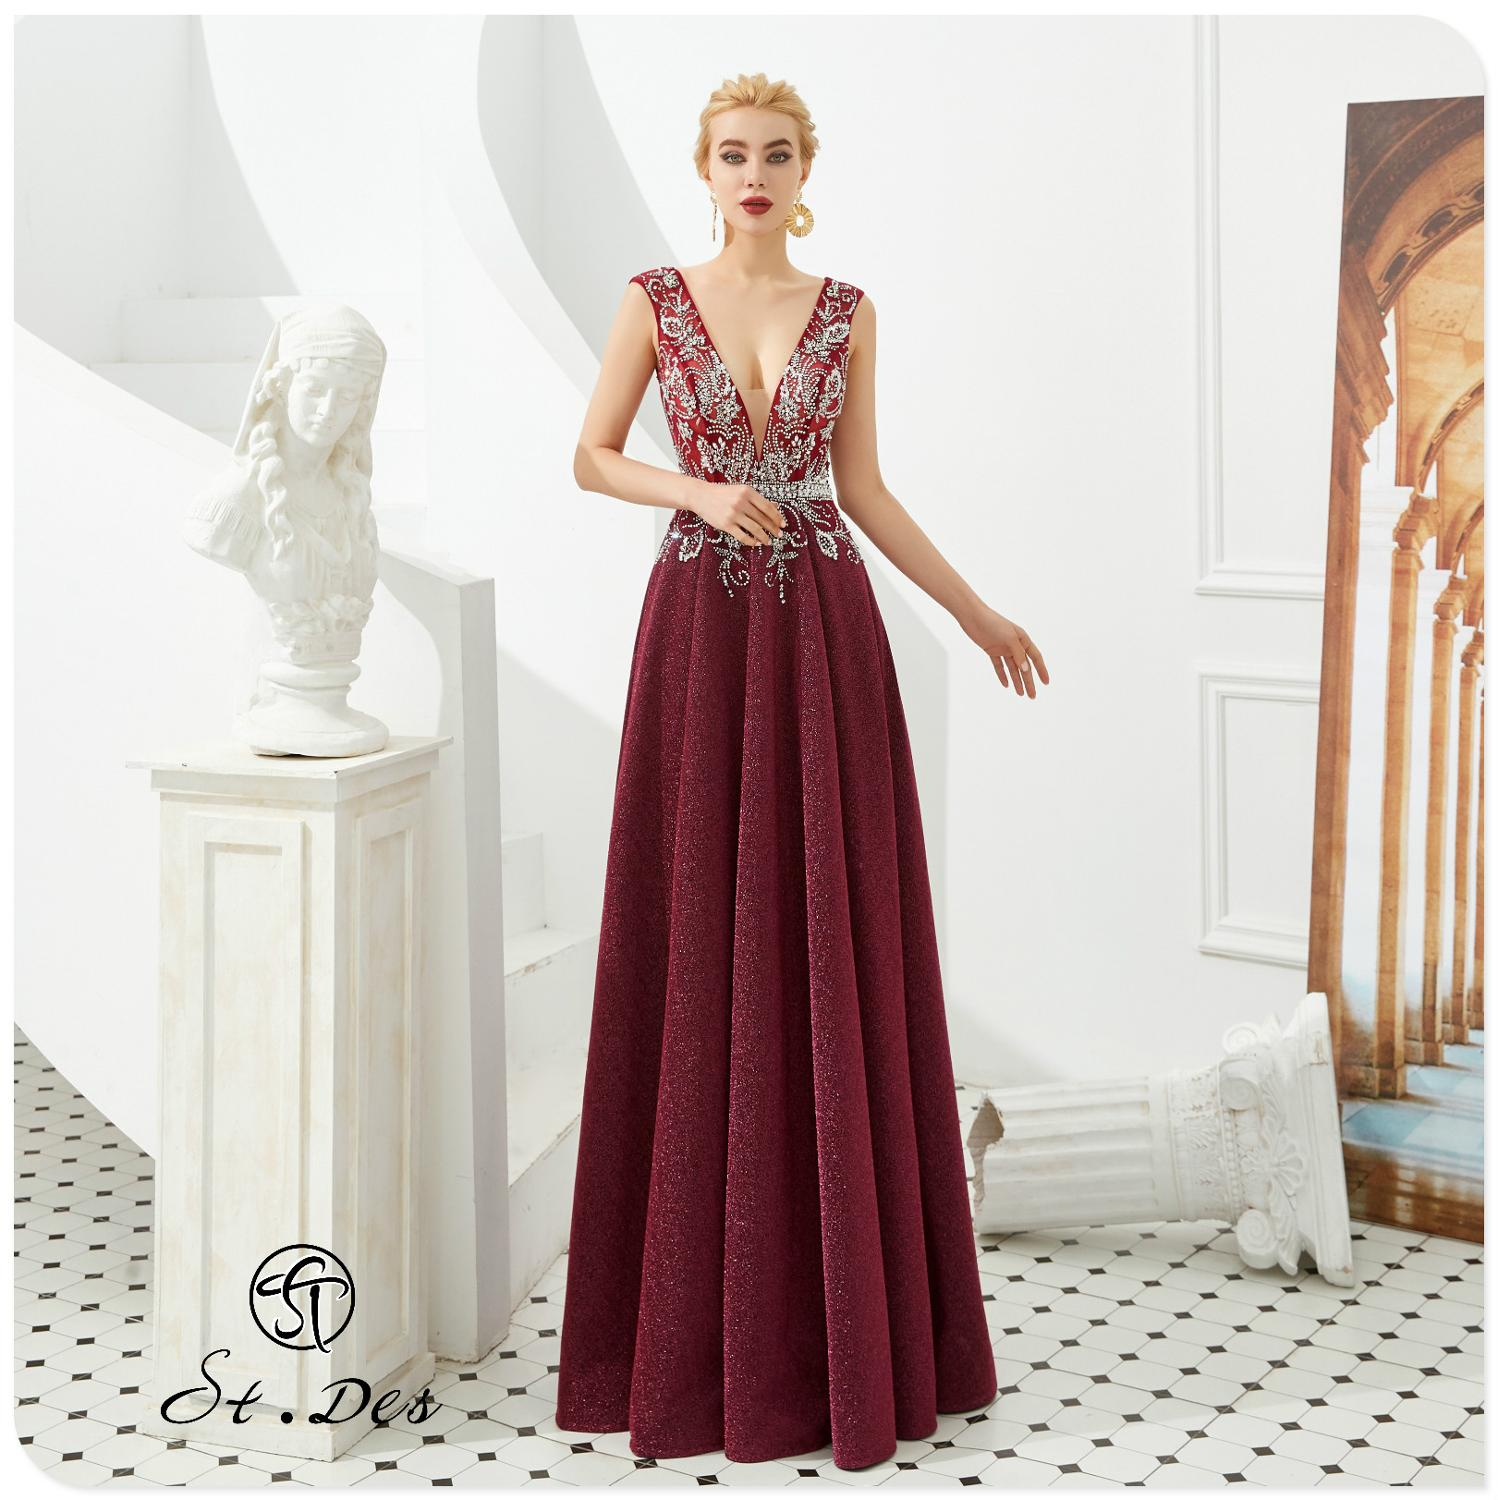 NEW 2020 St.De0s A-line V-Neck Wine Flower Beading Sleeveless Designer Floor Length Evening Dress Party Dress